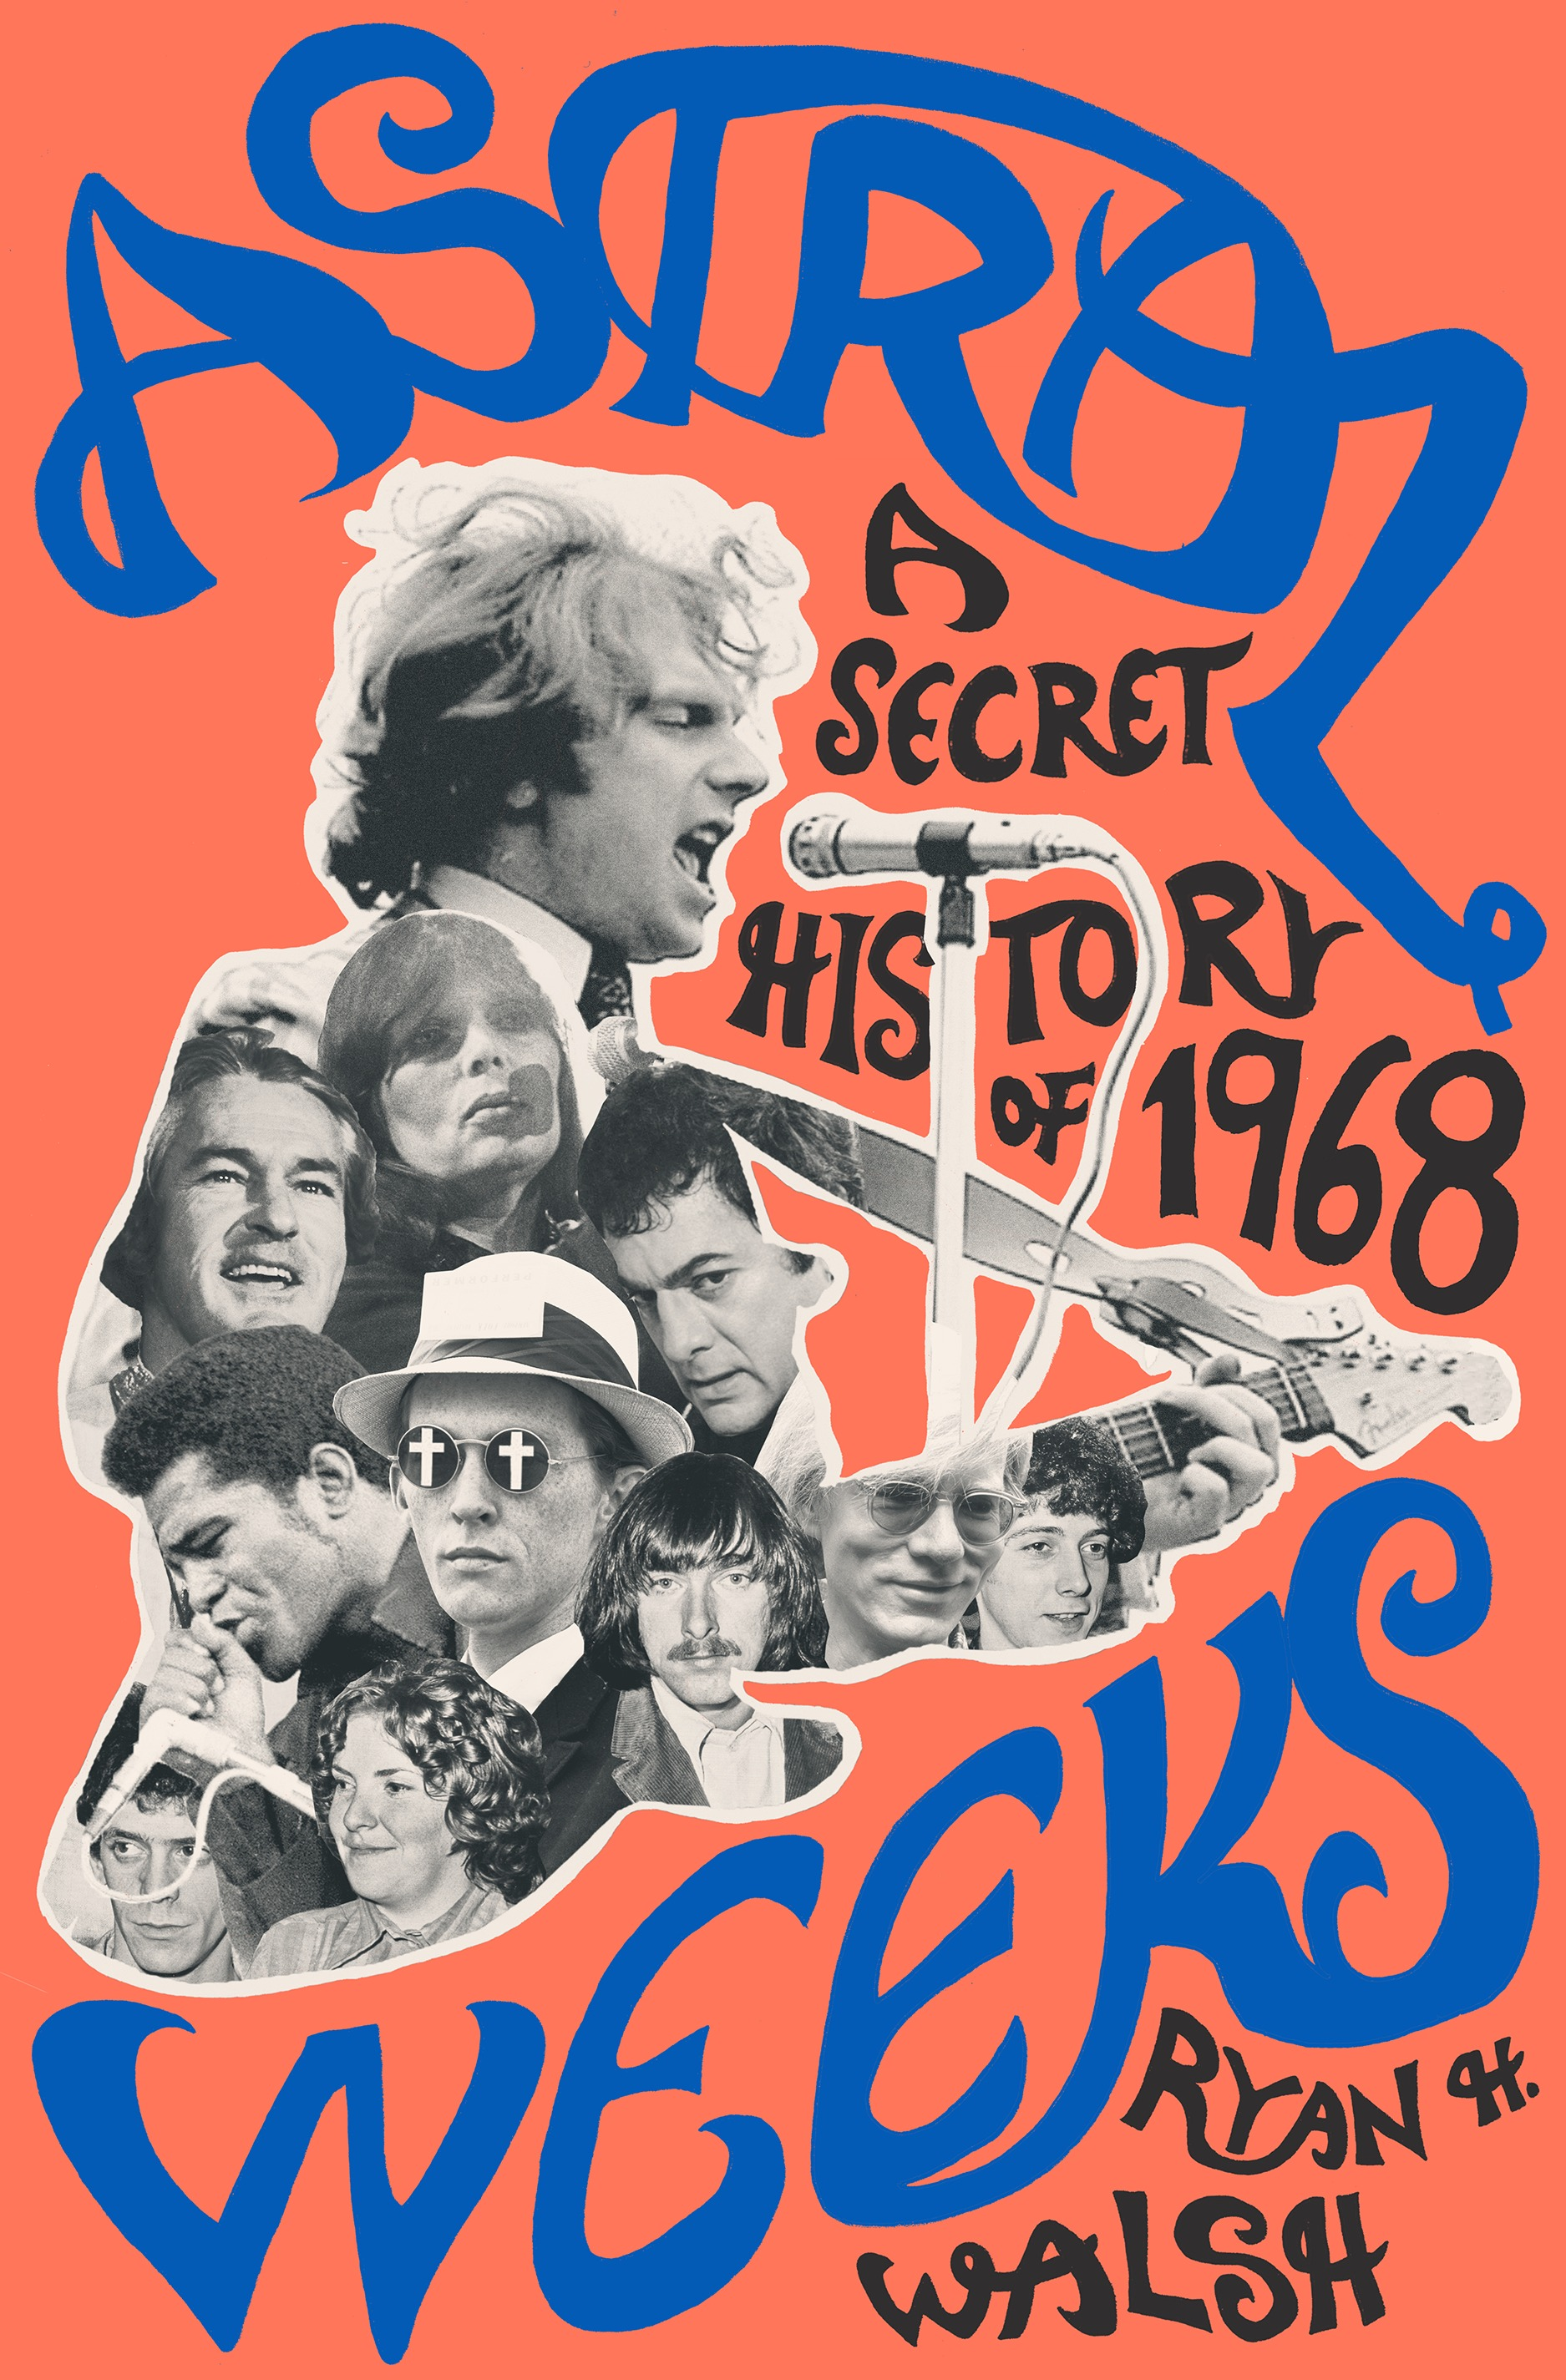 Event image for Ryan Walsh author of Astral Weeks: A Secret History of 1968